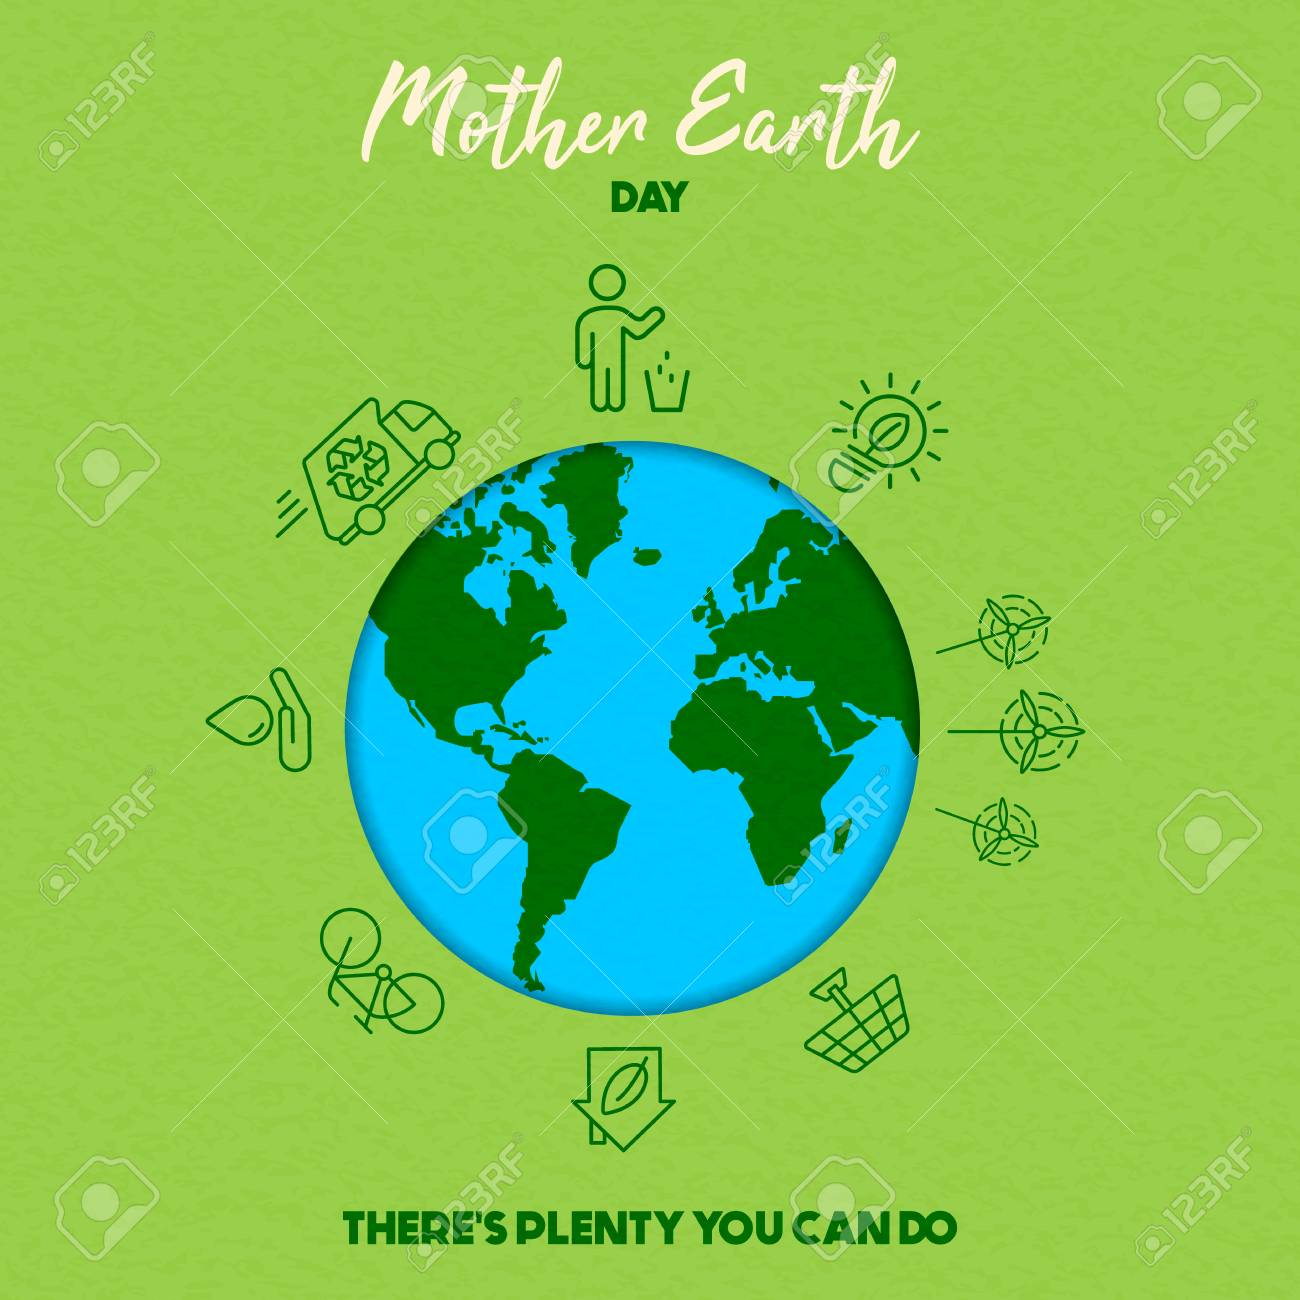 International Earth Day illustration. Save the world concept for eco friendly activities and social environment awareness. - 119655866